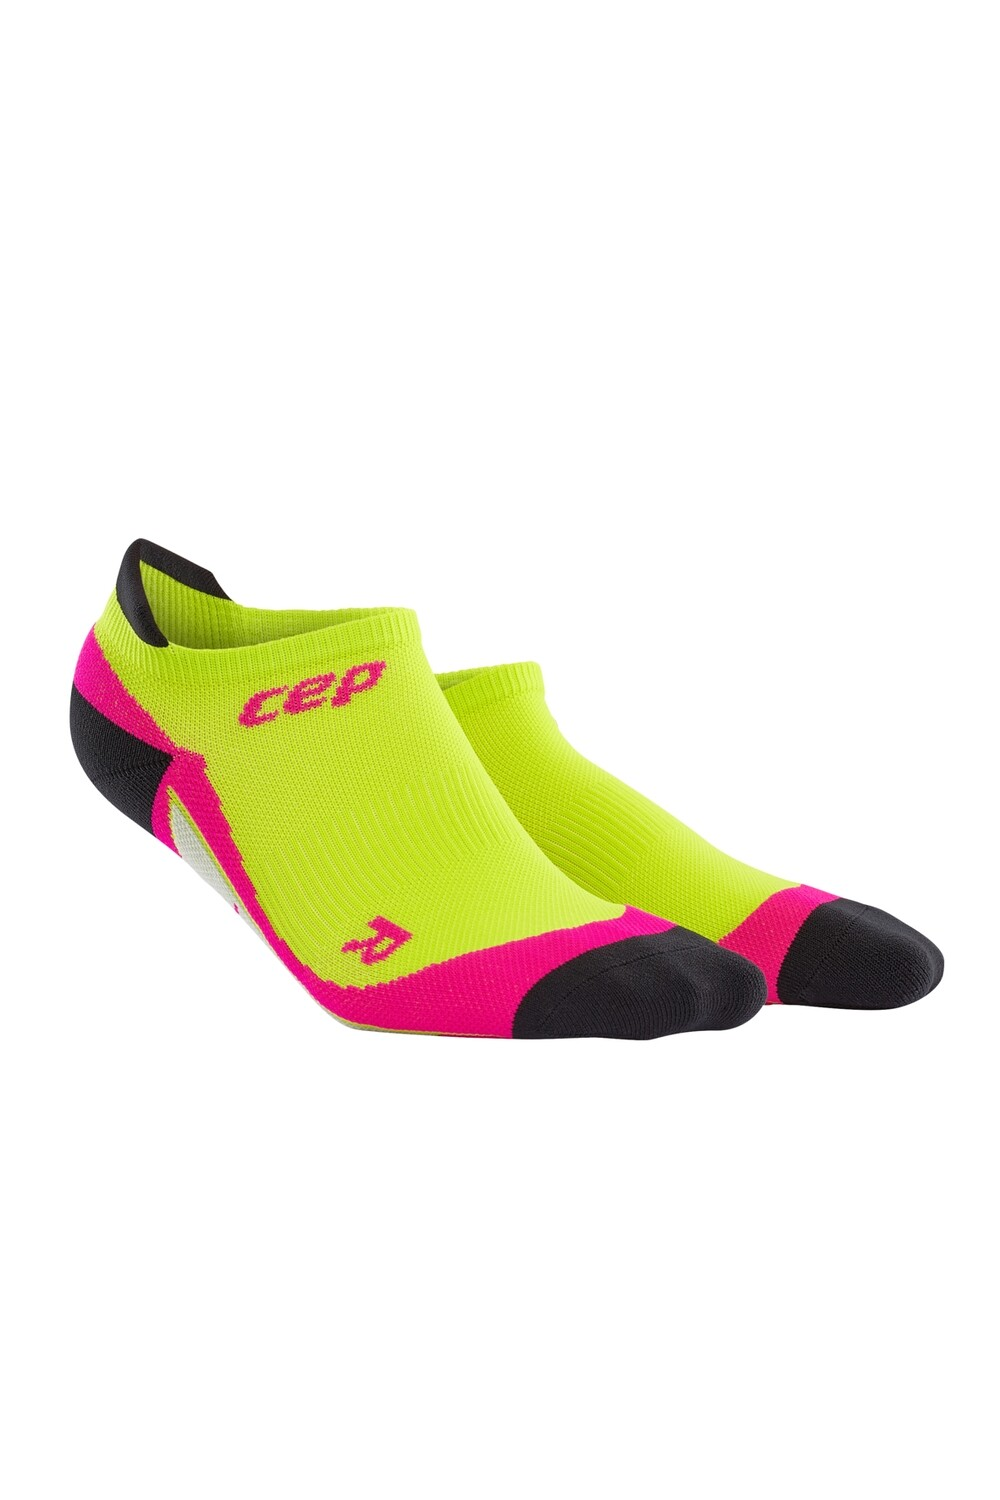 CEP No Show Socks lime/pink WP4670